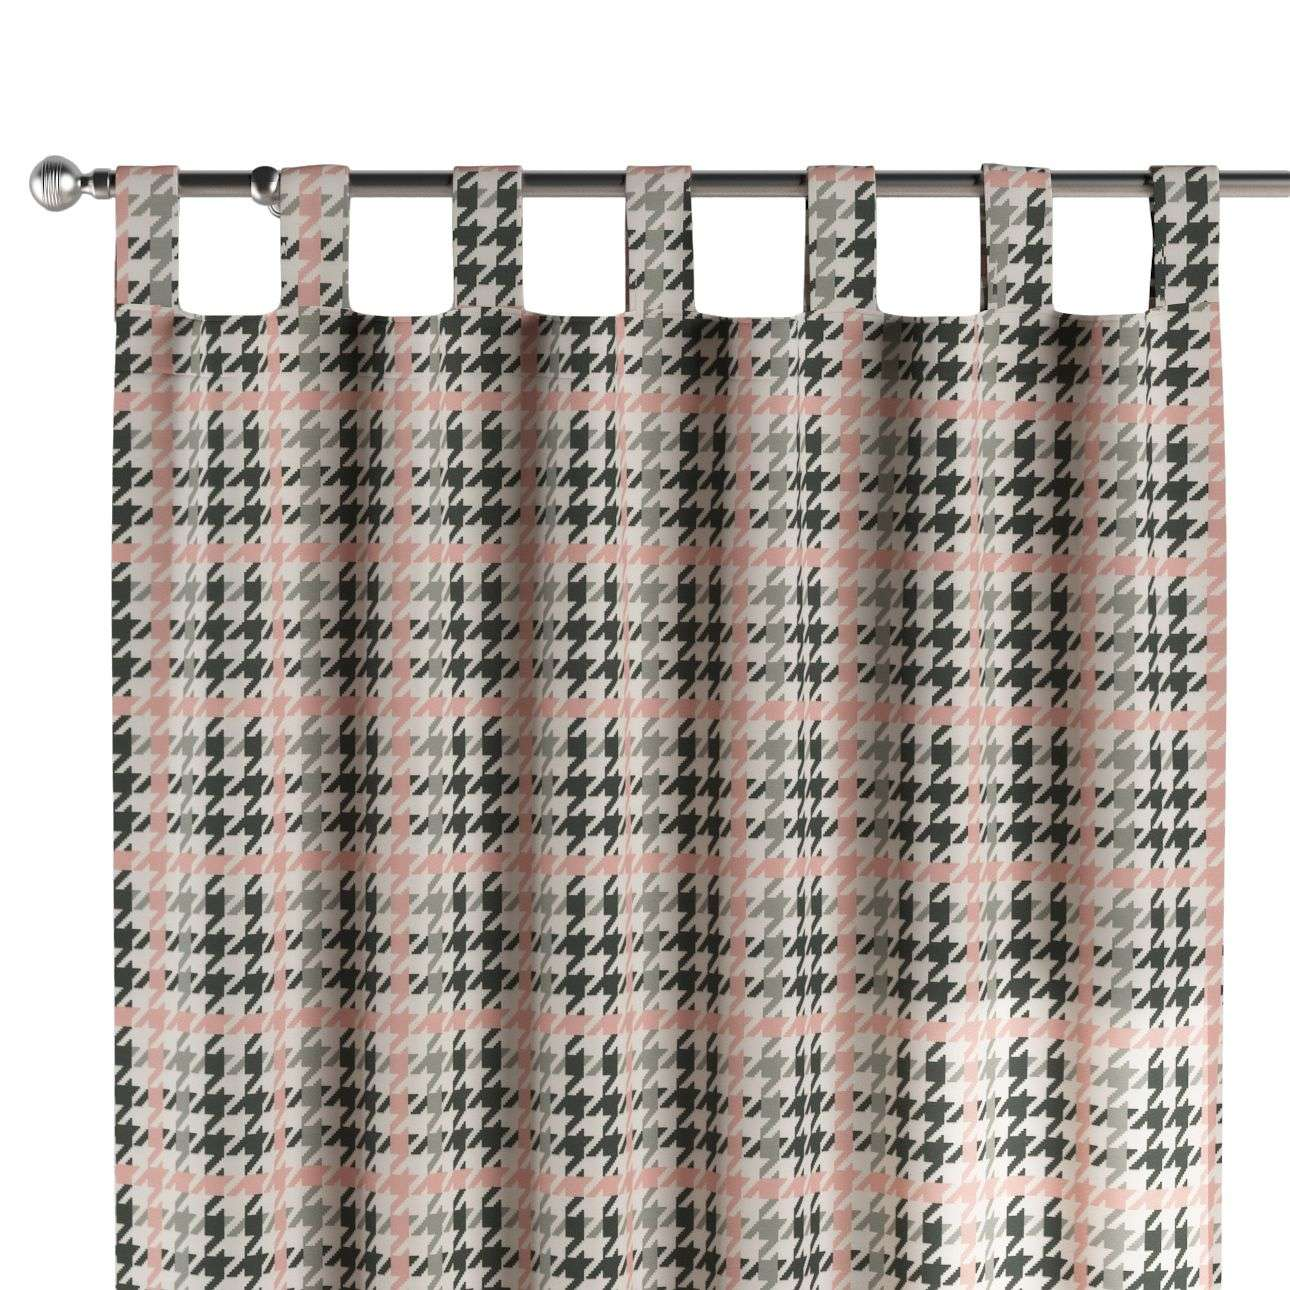 Tab top curtains 130 x 260 cm (51 x 102 inch) in collection Brooklyn, fabric: 137-75